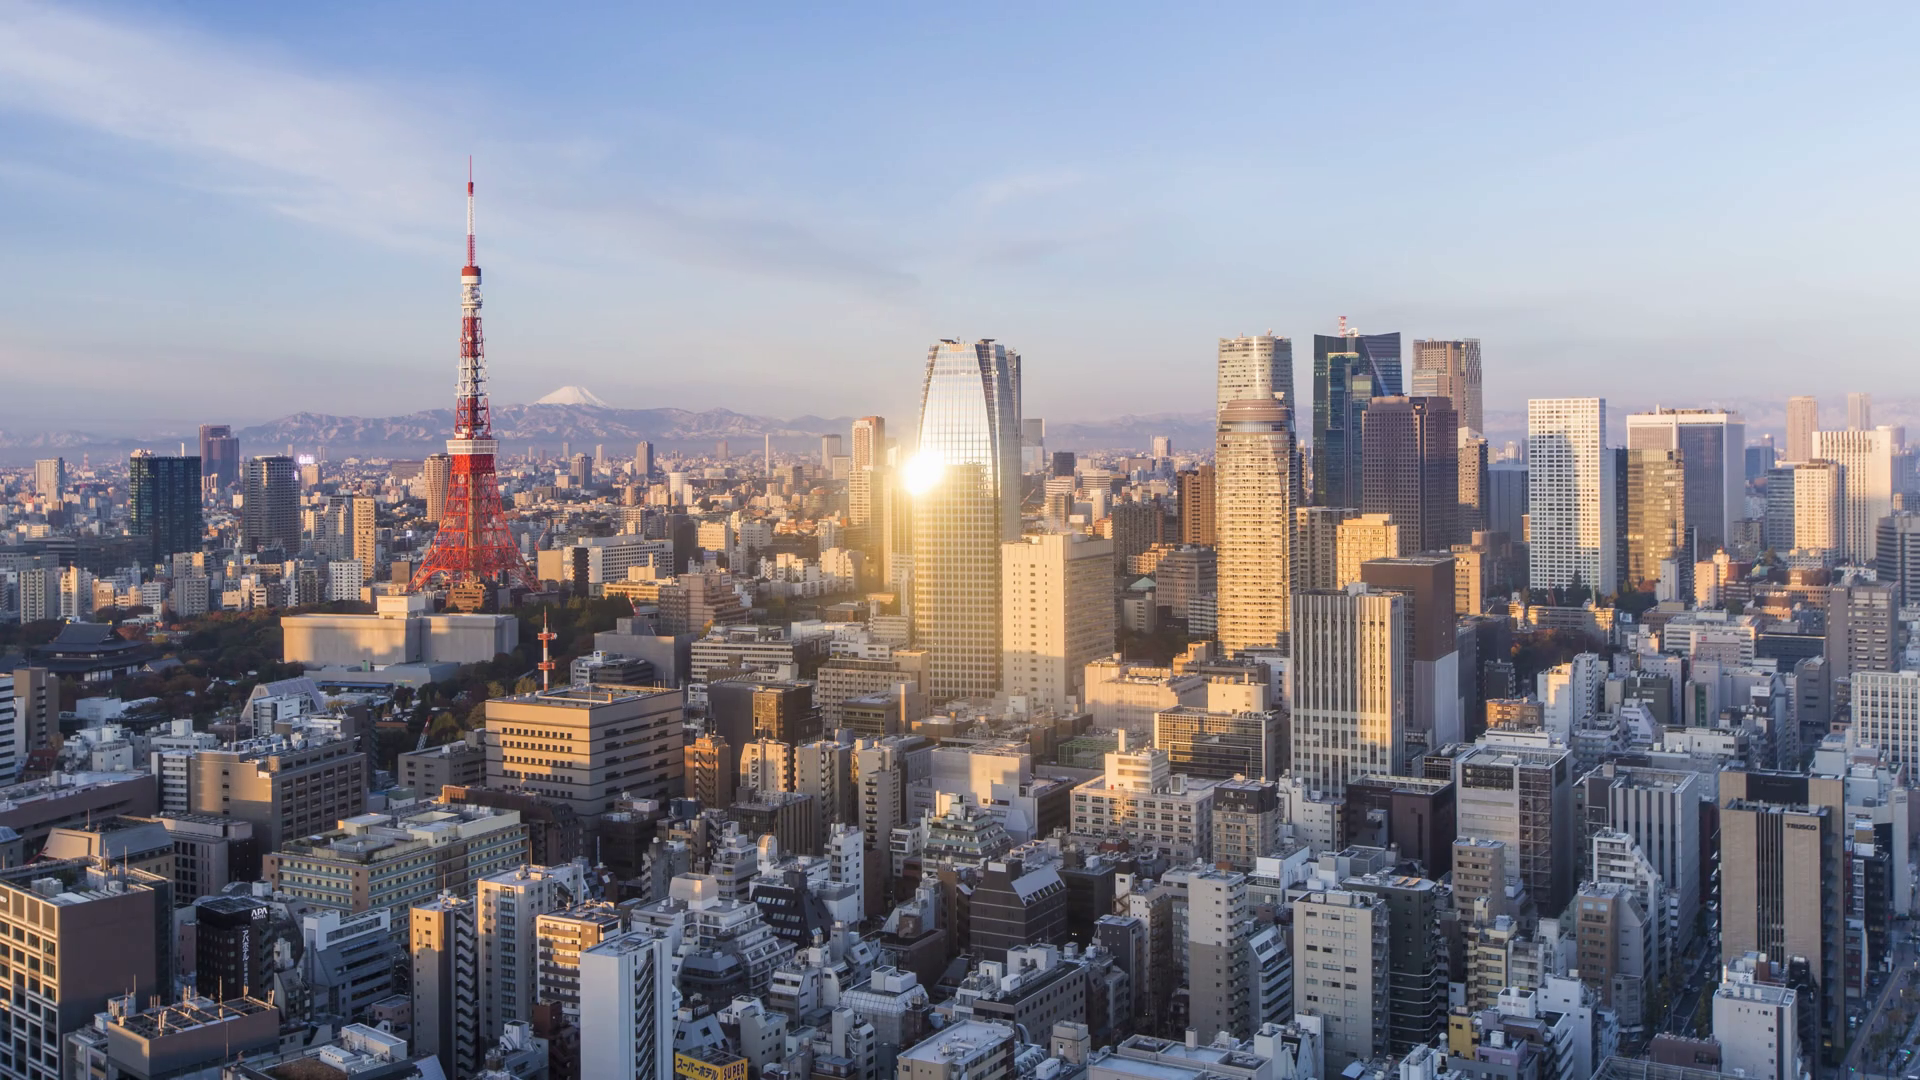 videoblocks-japan-tokyo-elevated-time-lapse-of-the-city-skyline-and-iconic-illuminated-tokyo-tower_rtsgfwtgz_thumbnail-full01.png